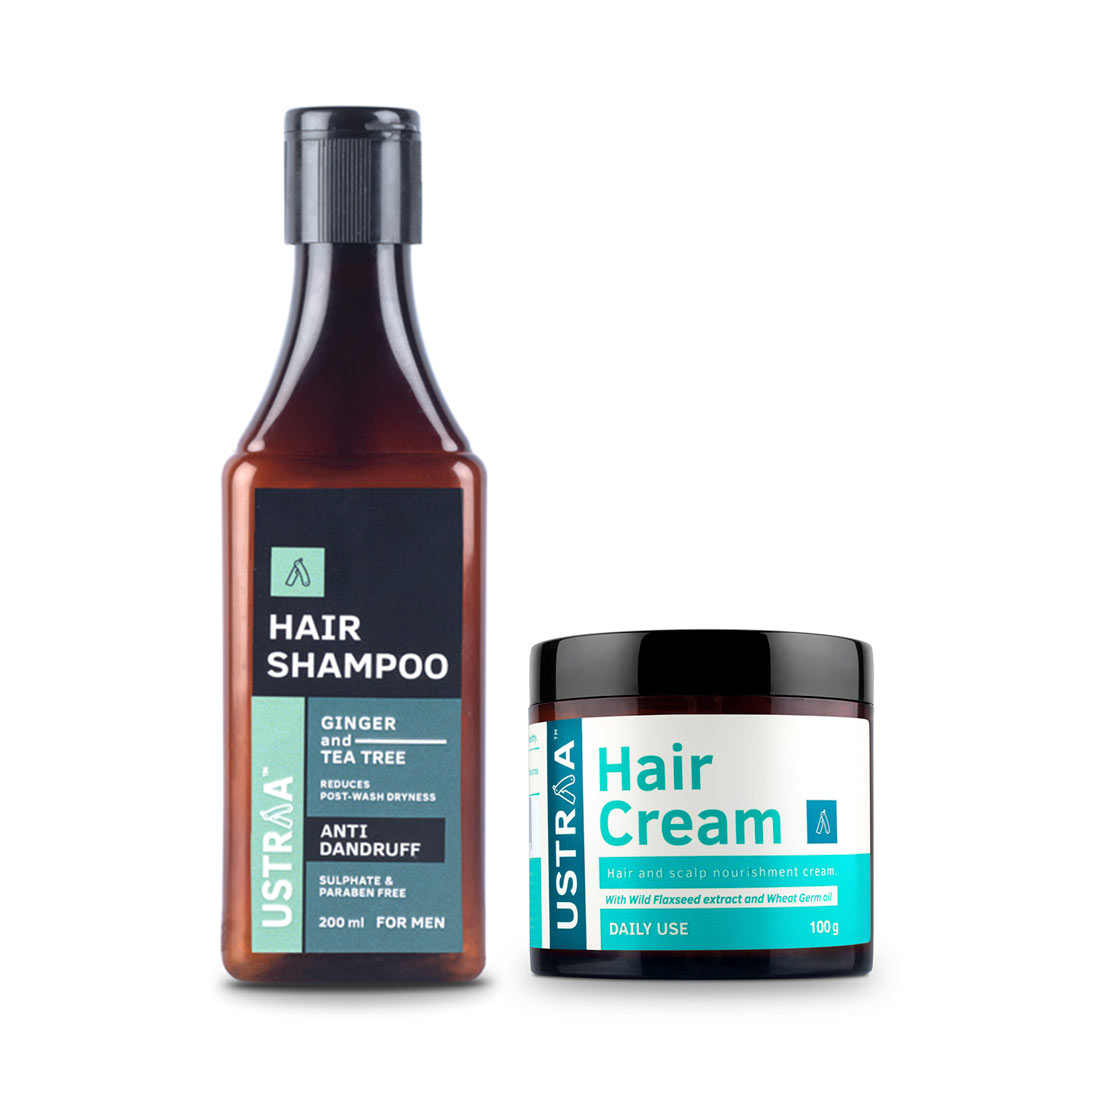 Anti Dandruff Hair Shampoo & Daily Use Hair Cream